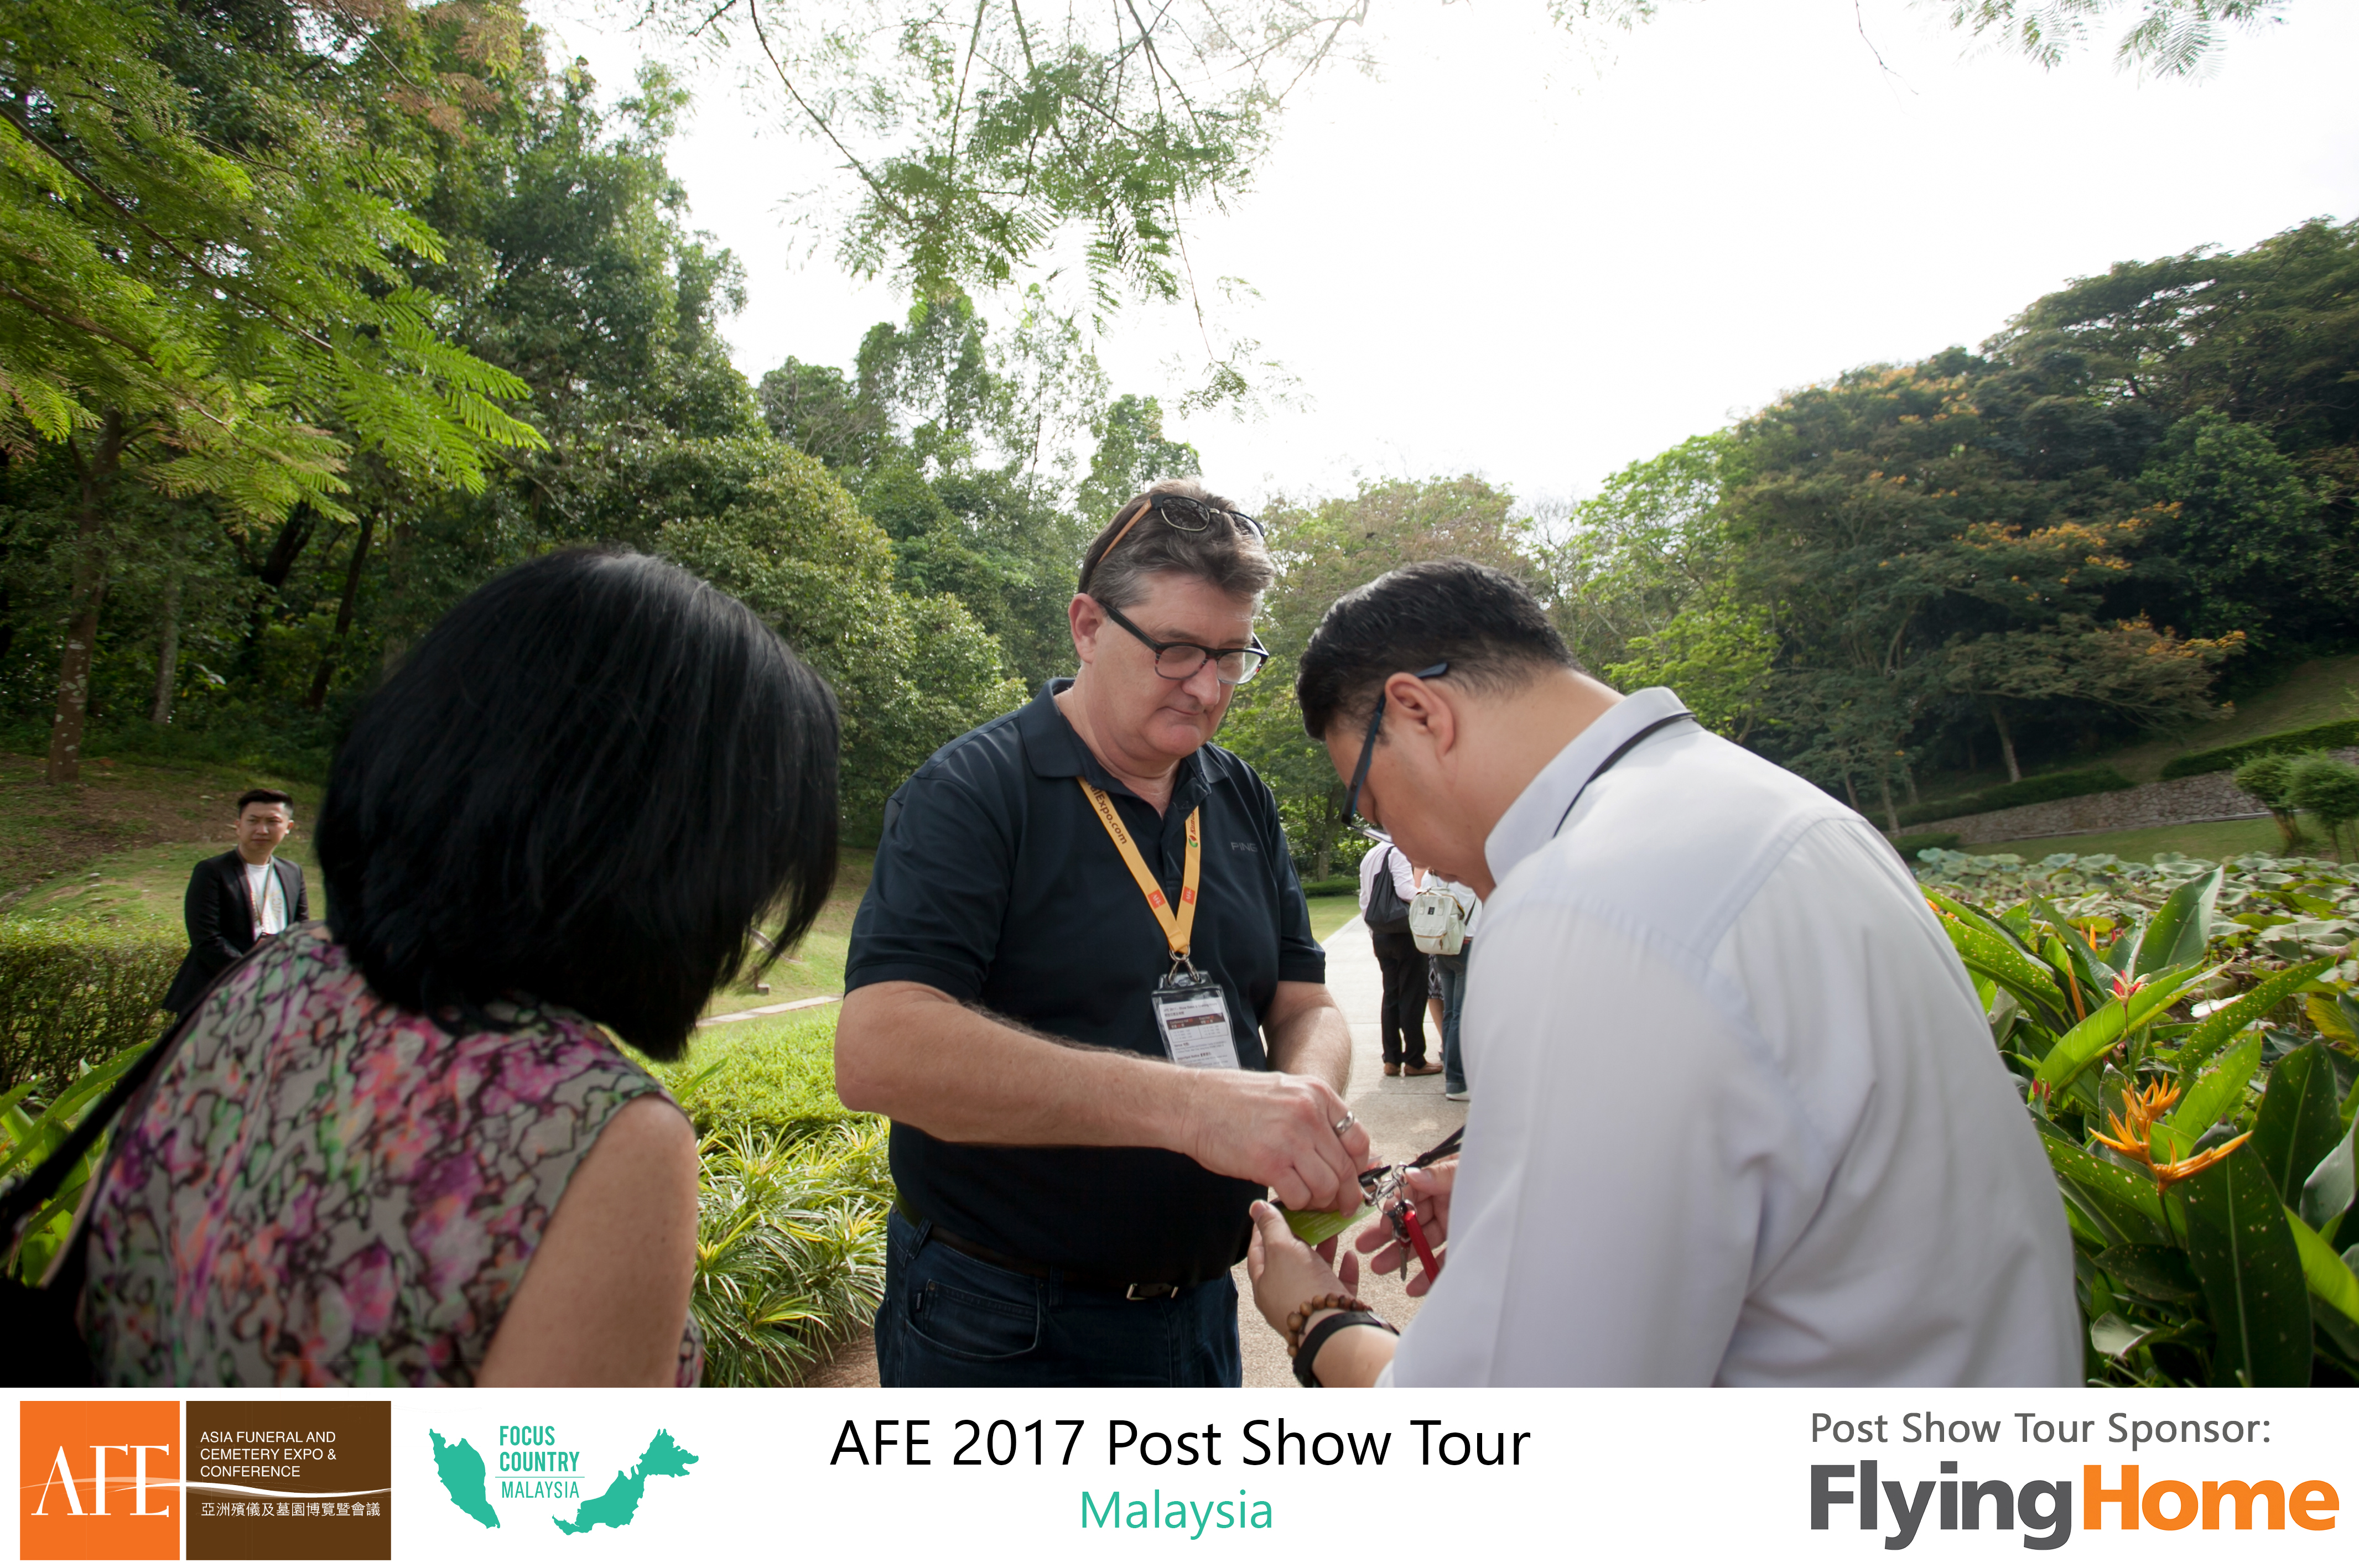 AFE Post Show Tour 2017 Day 3 -46